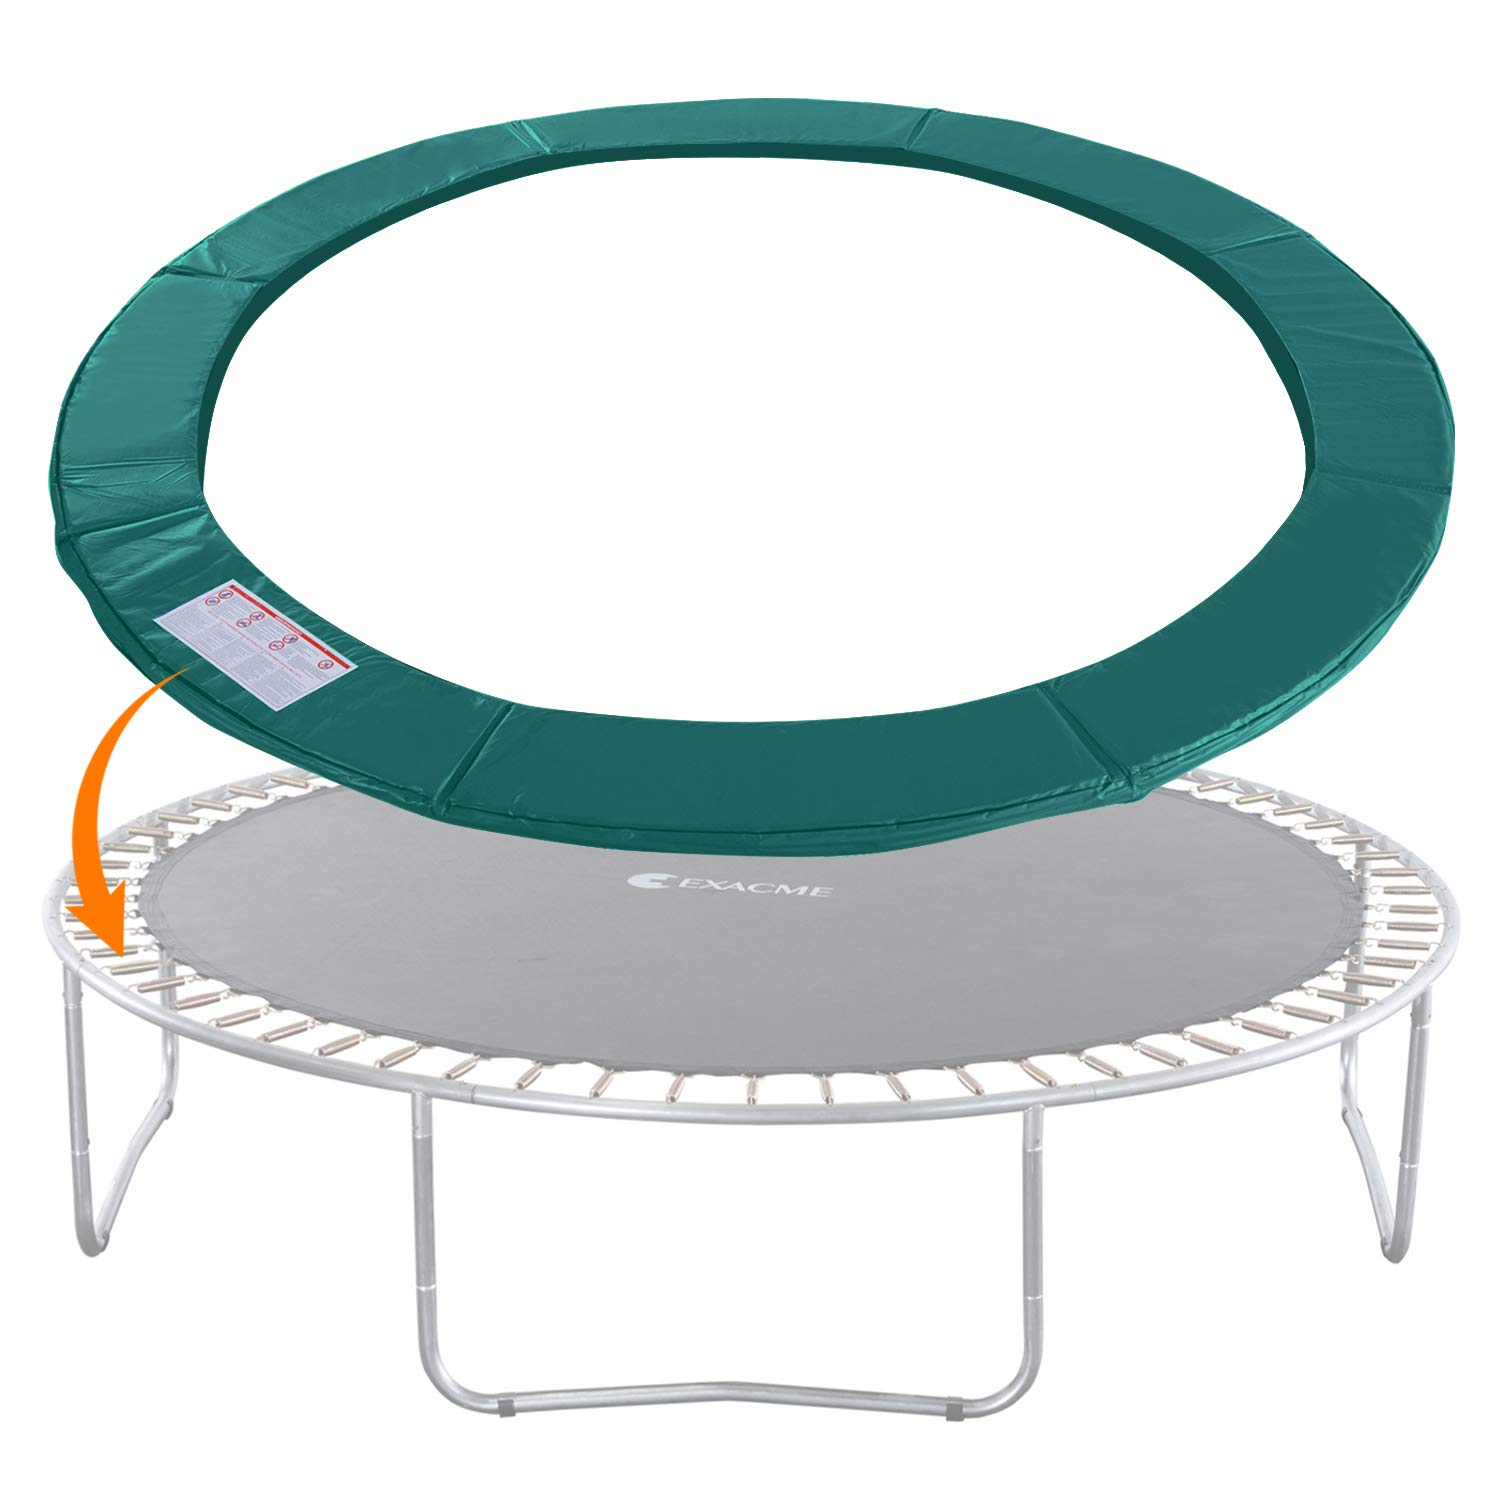 Exacme Trampoline Replacement Safety Pad Round Spring Cover, No Slots (Green, 14 Foot) (Renewed) by Exacme